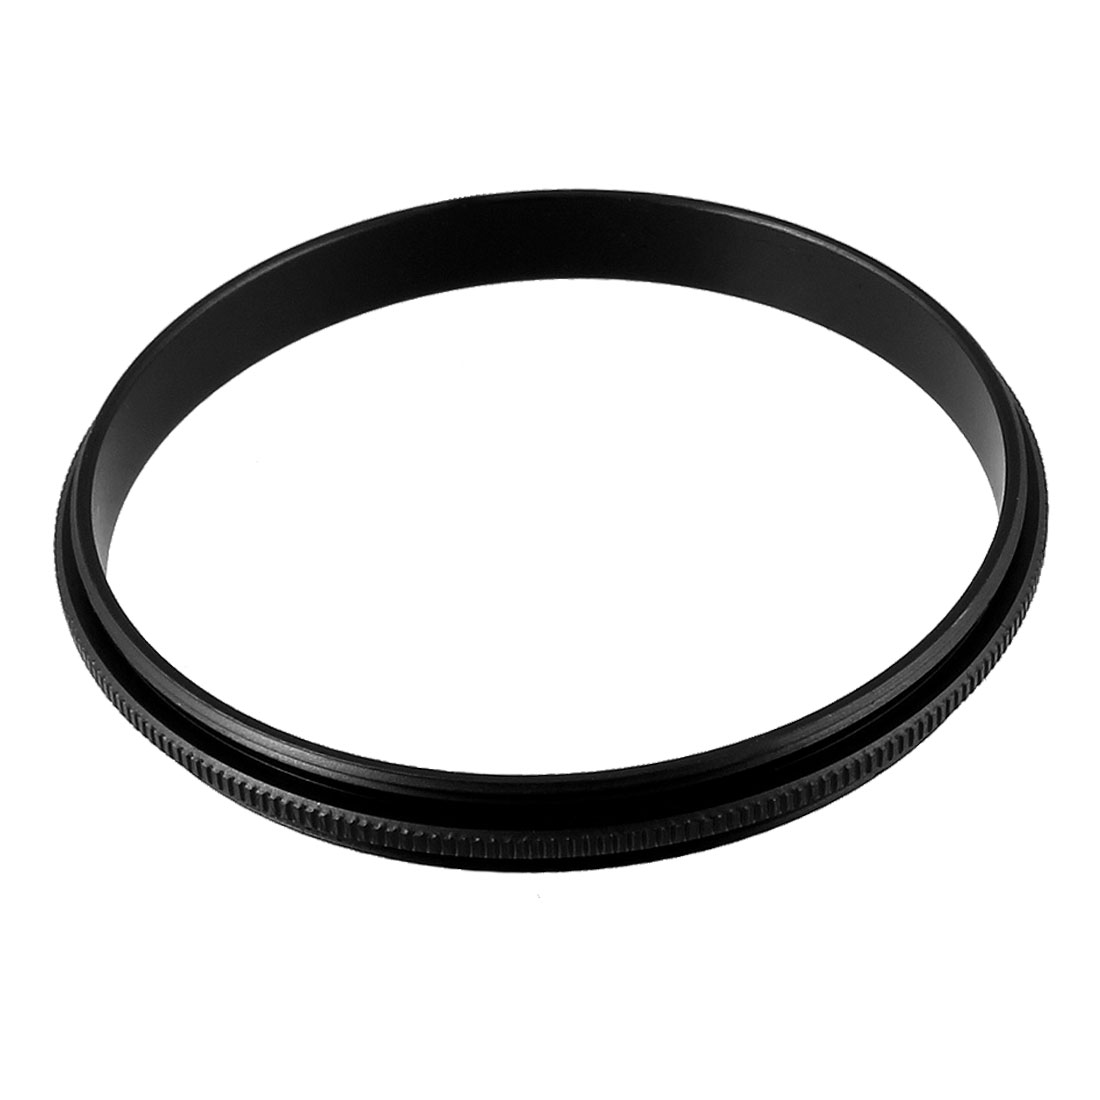 58mm Male to Male Metal Step Ring Adapter Black for Camera